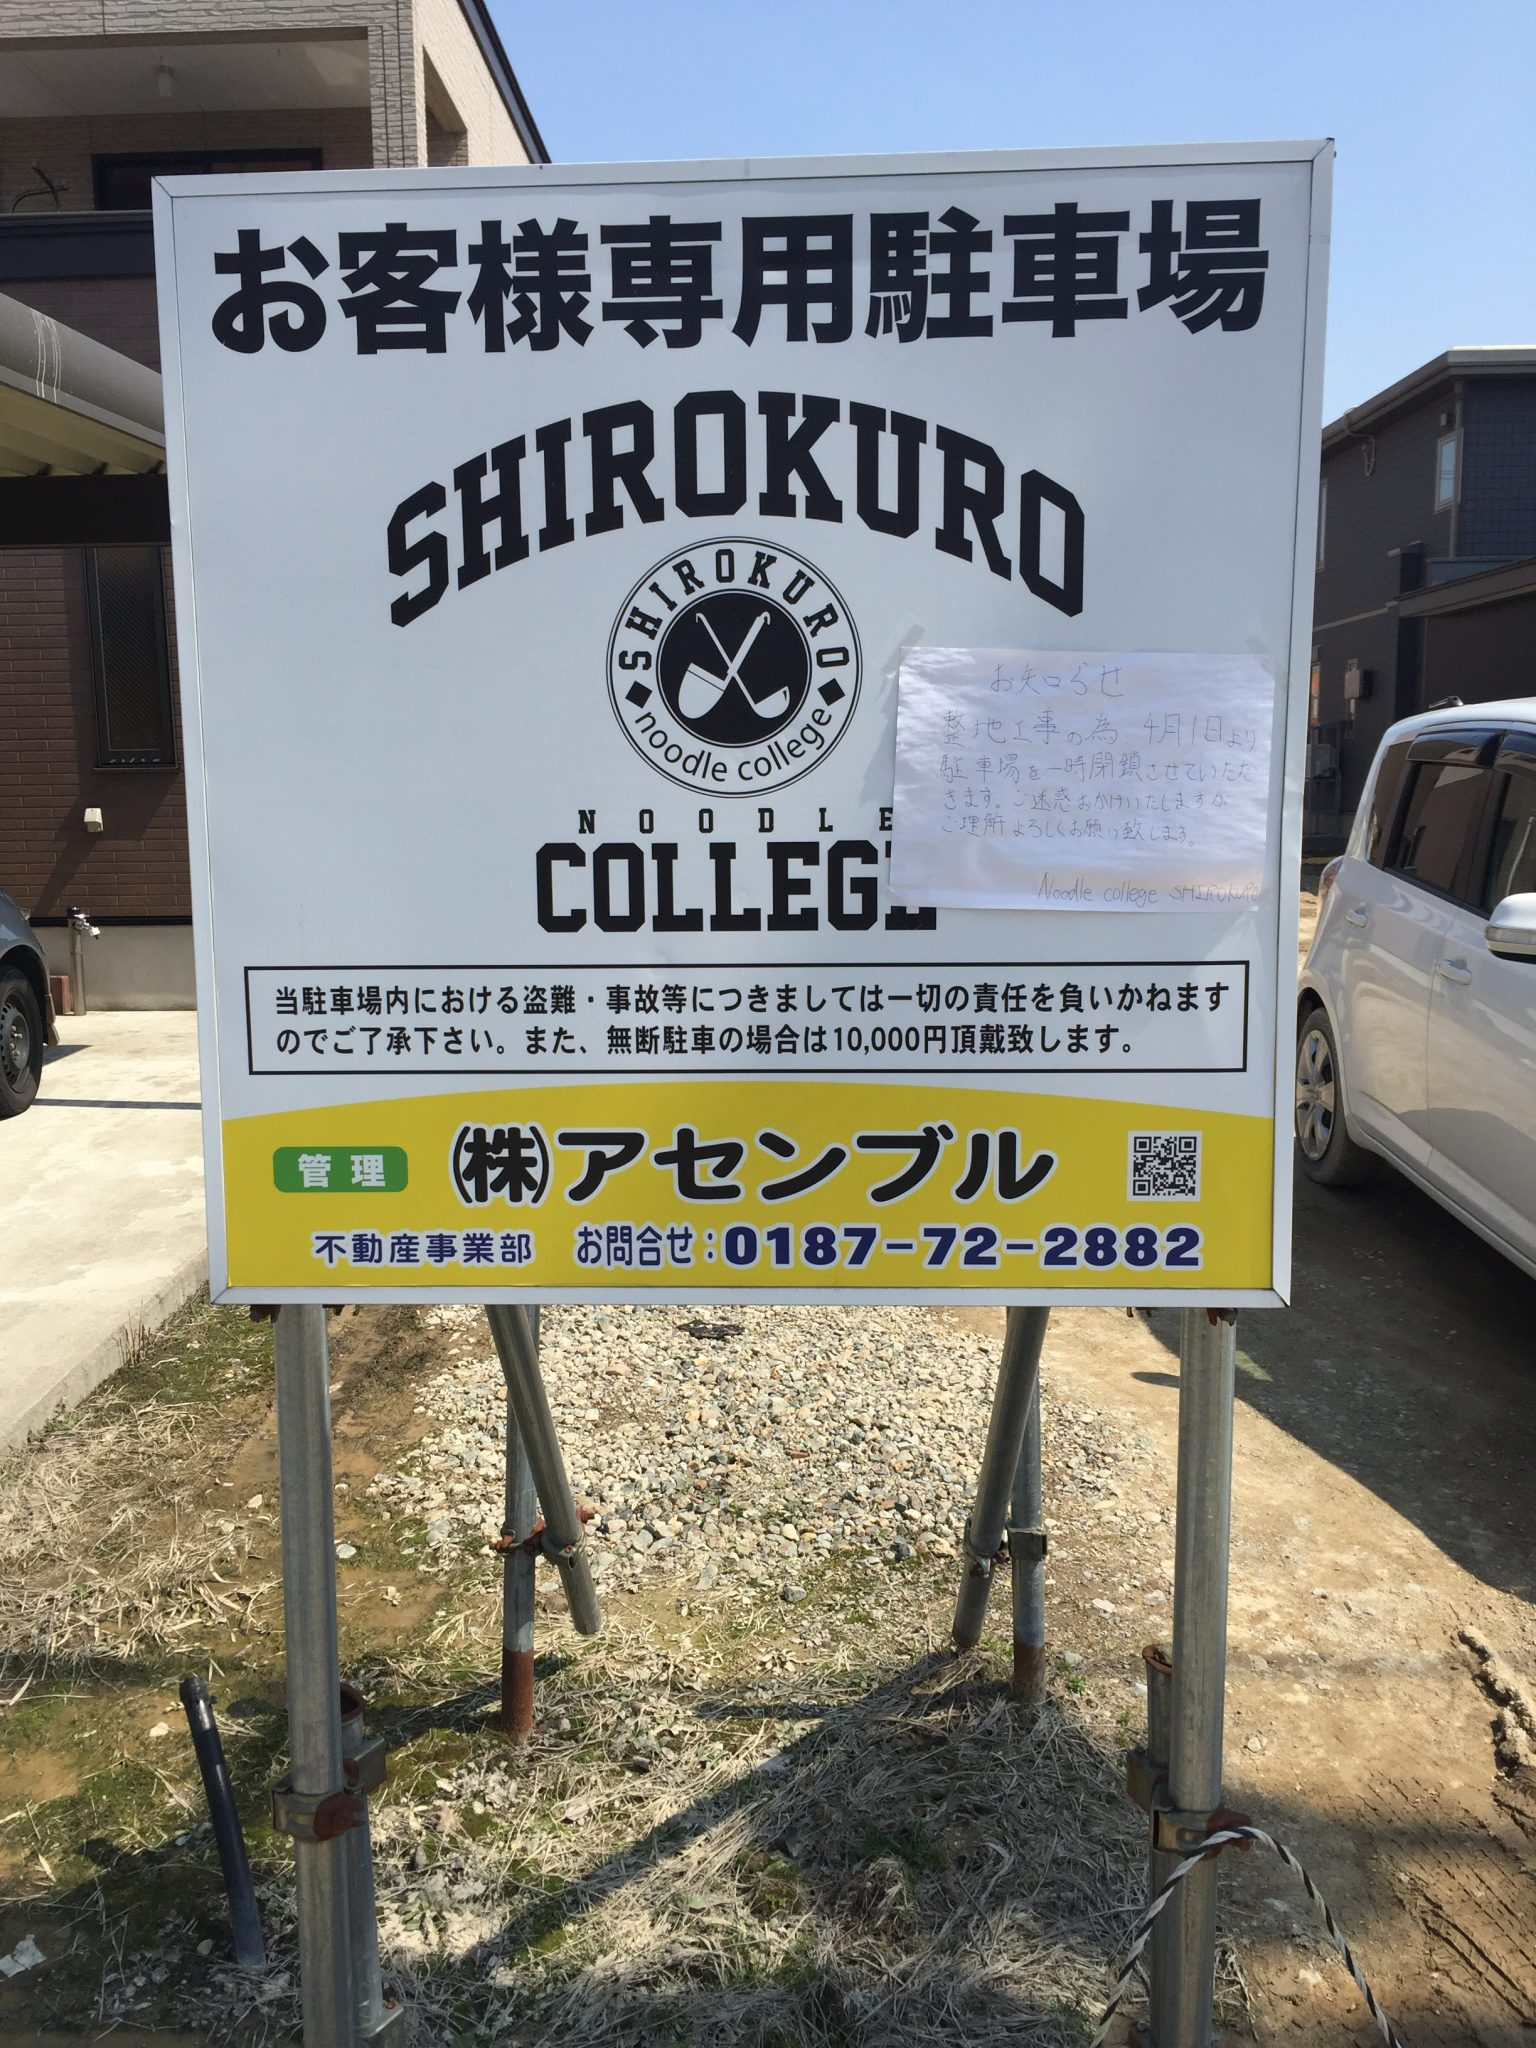 Noodle college SHIROKURO 駐車場案内